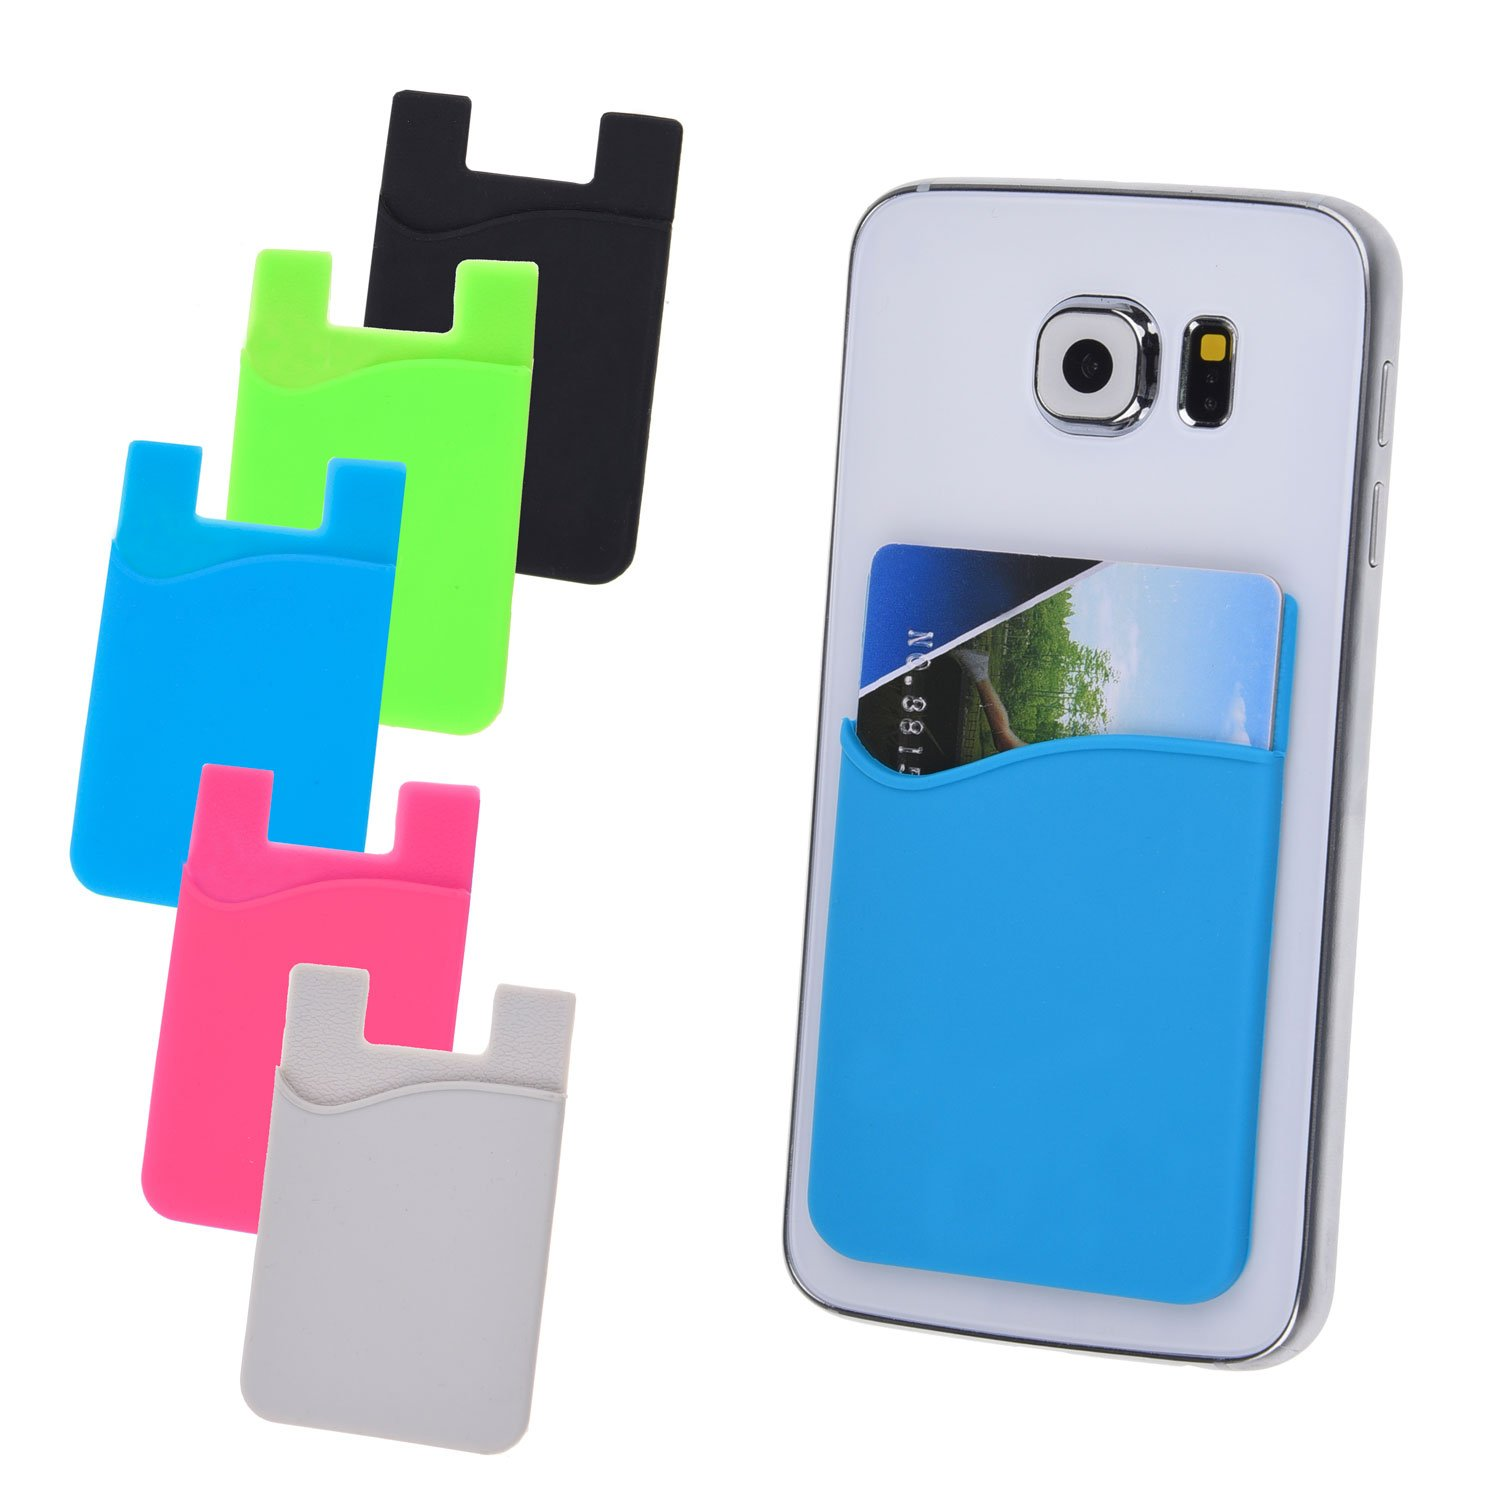 Credit Card / ID Card Holder - Attach to any Phone - Carry your Essential Cards with your Phone - Silicone Material, cards will not fall out - 3M sticker - with Safe Flight Cloth and Retail Package